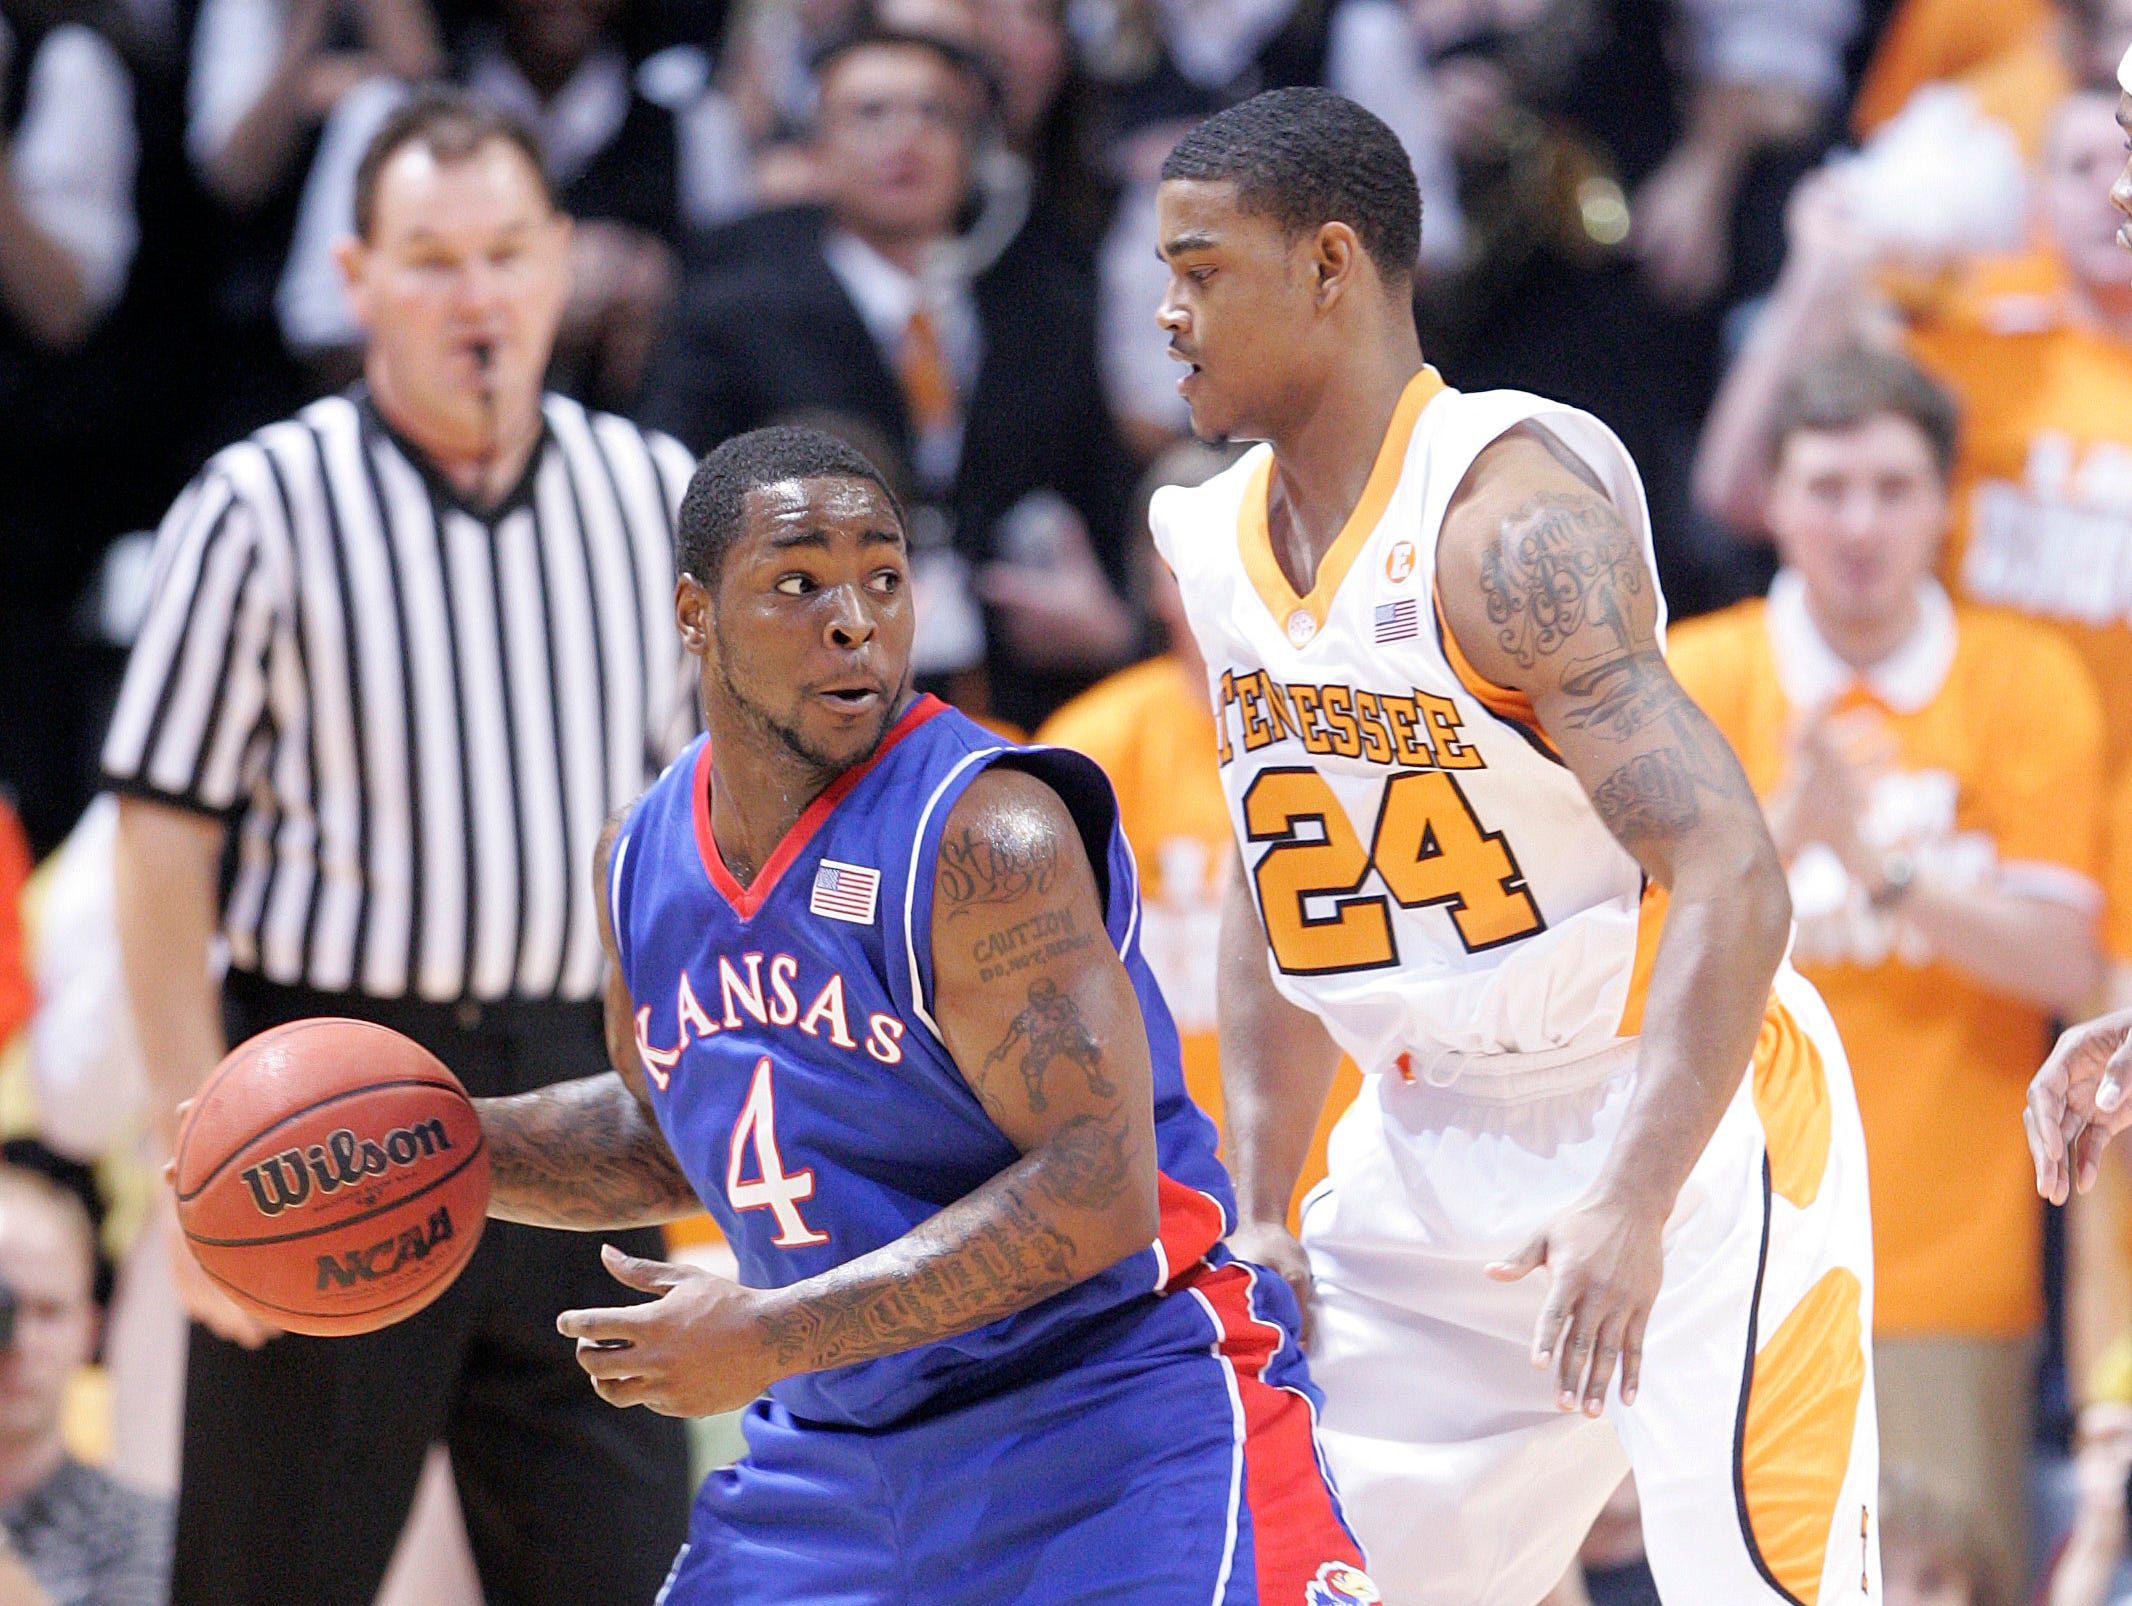 Kansas' Sherron Collins (04) drives against Tennessee Josh Bone (24) during the first half of an NCAA college basketball game Sunday, Jan. 10, 2010 in Knoxville, Tenn.